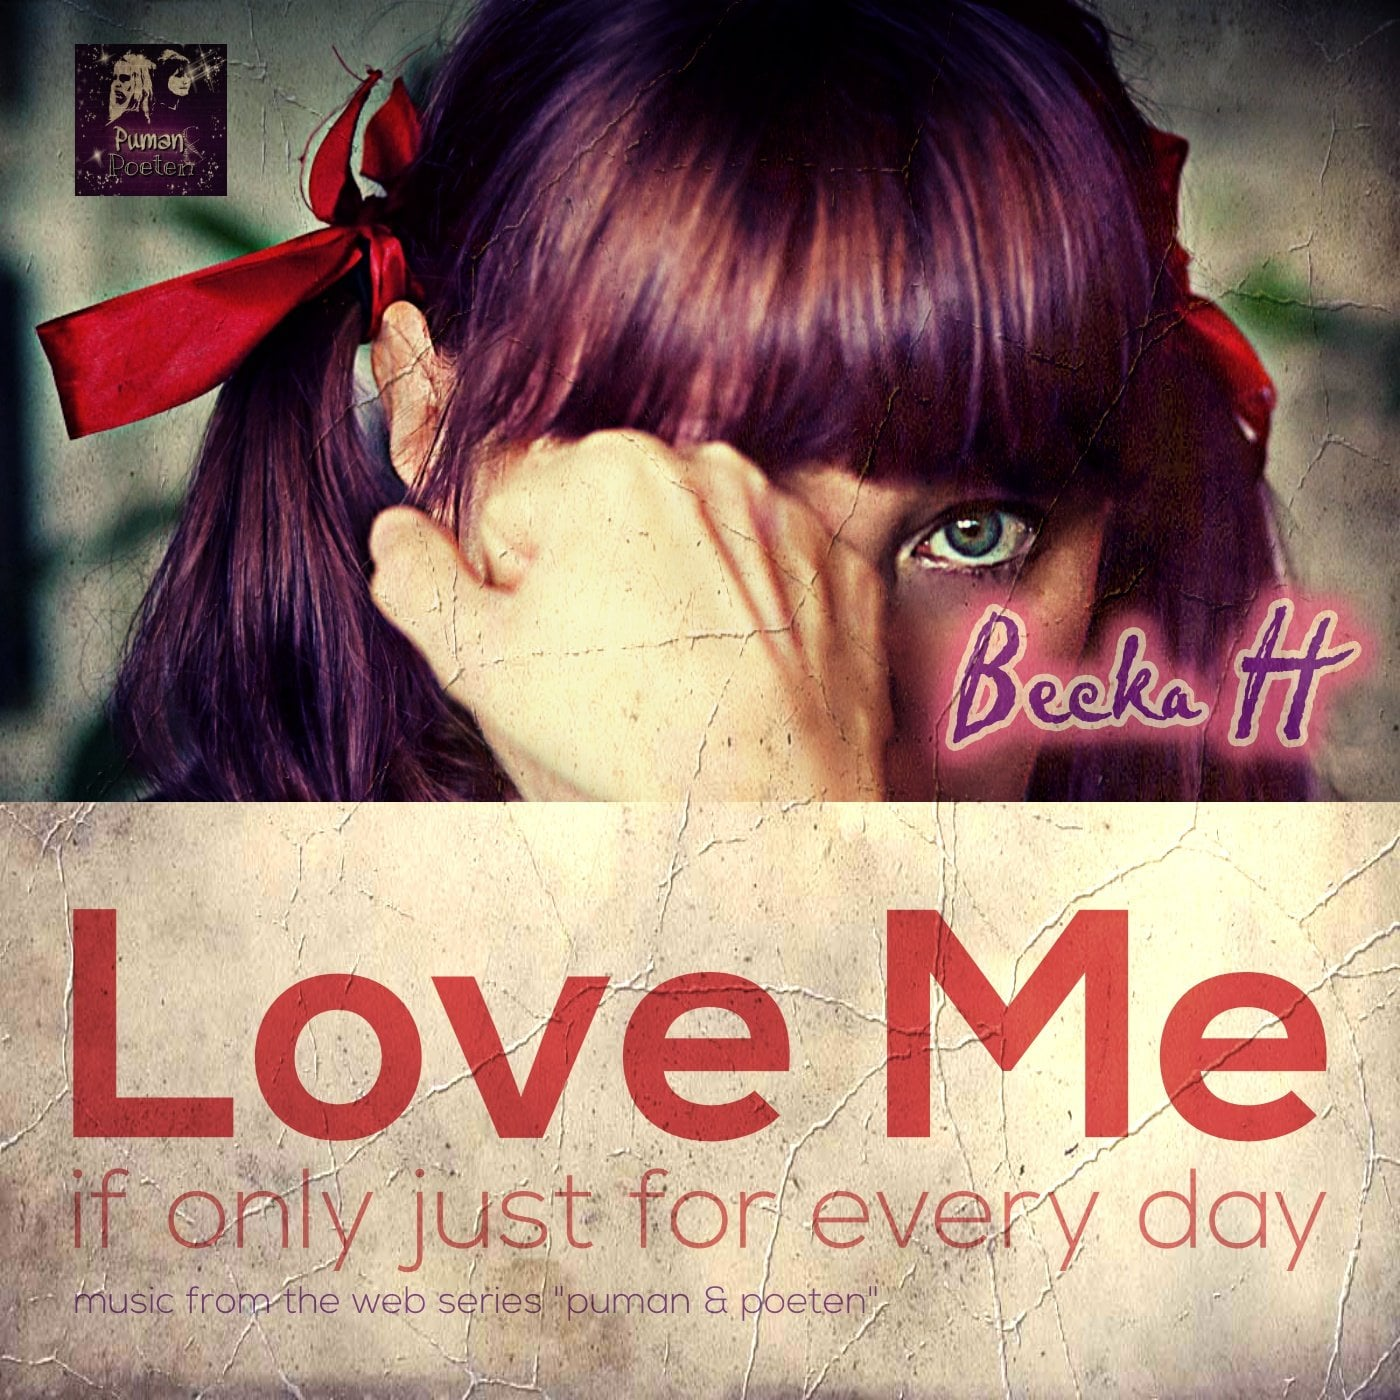 Becka H - Love Me (If Only Just for Every Day)